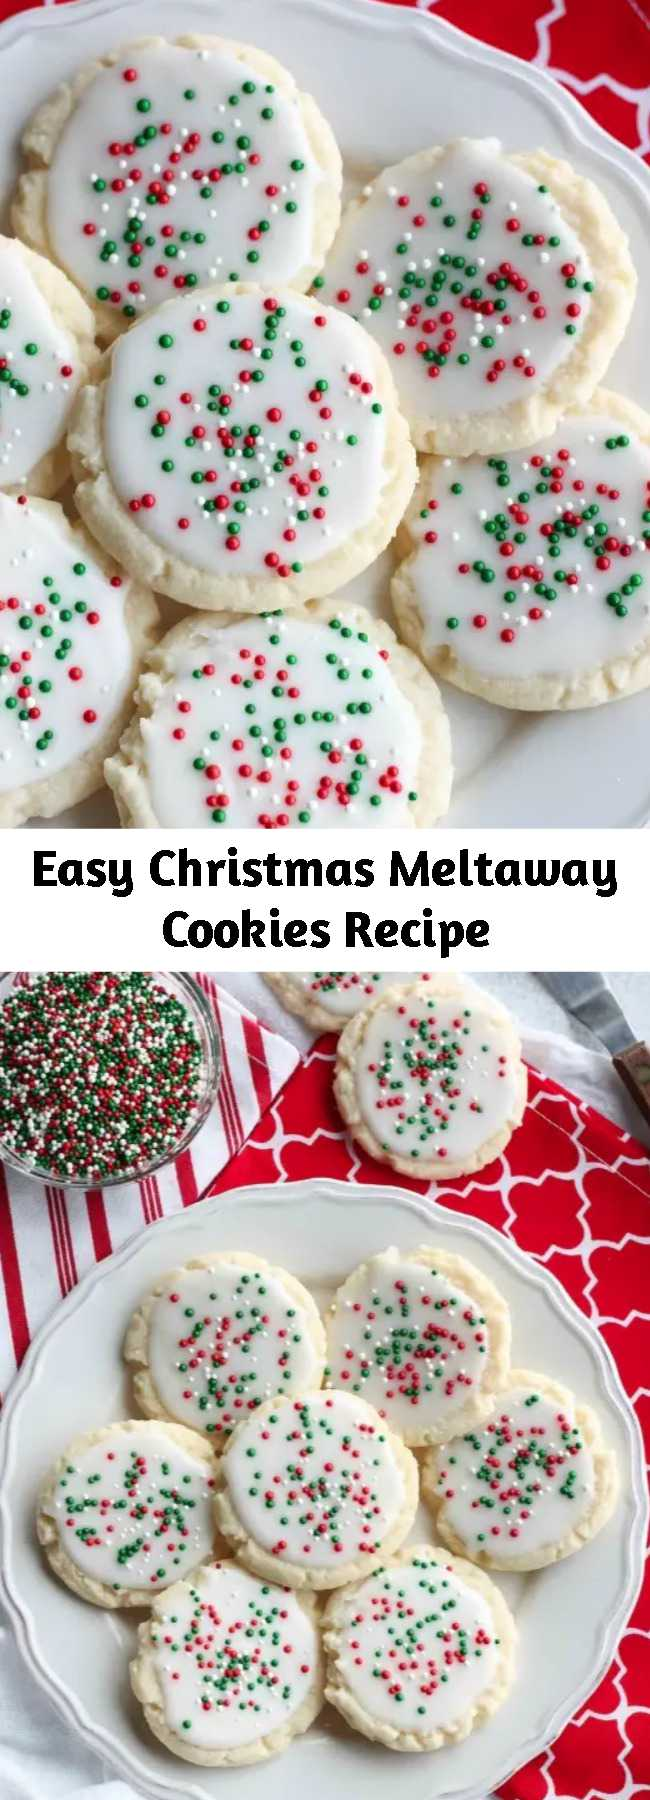 Easy Christmas Meltaway Cookies Recipe - Meltaway cookies are a soft, lightly sweet shortbread cookie that literally melts away in your mouth. Top it with a thin glaze and red and green sprinkles for a festive Christmas cookie treat. #christmascookies #cookieexchange